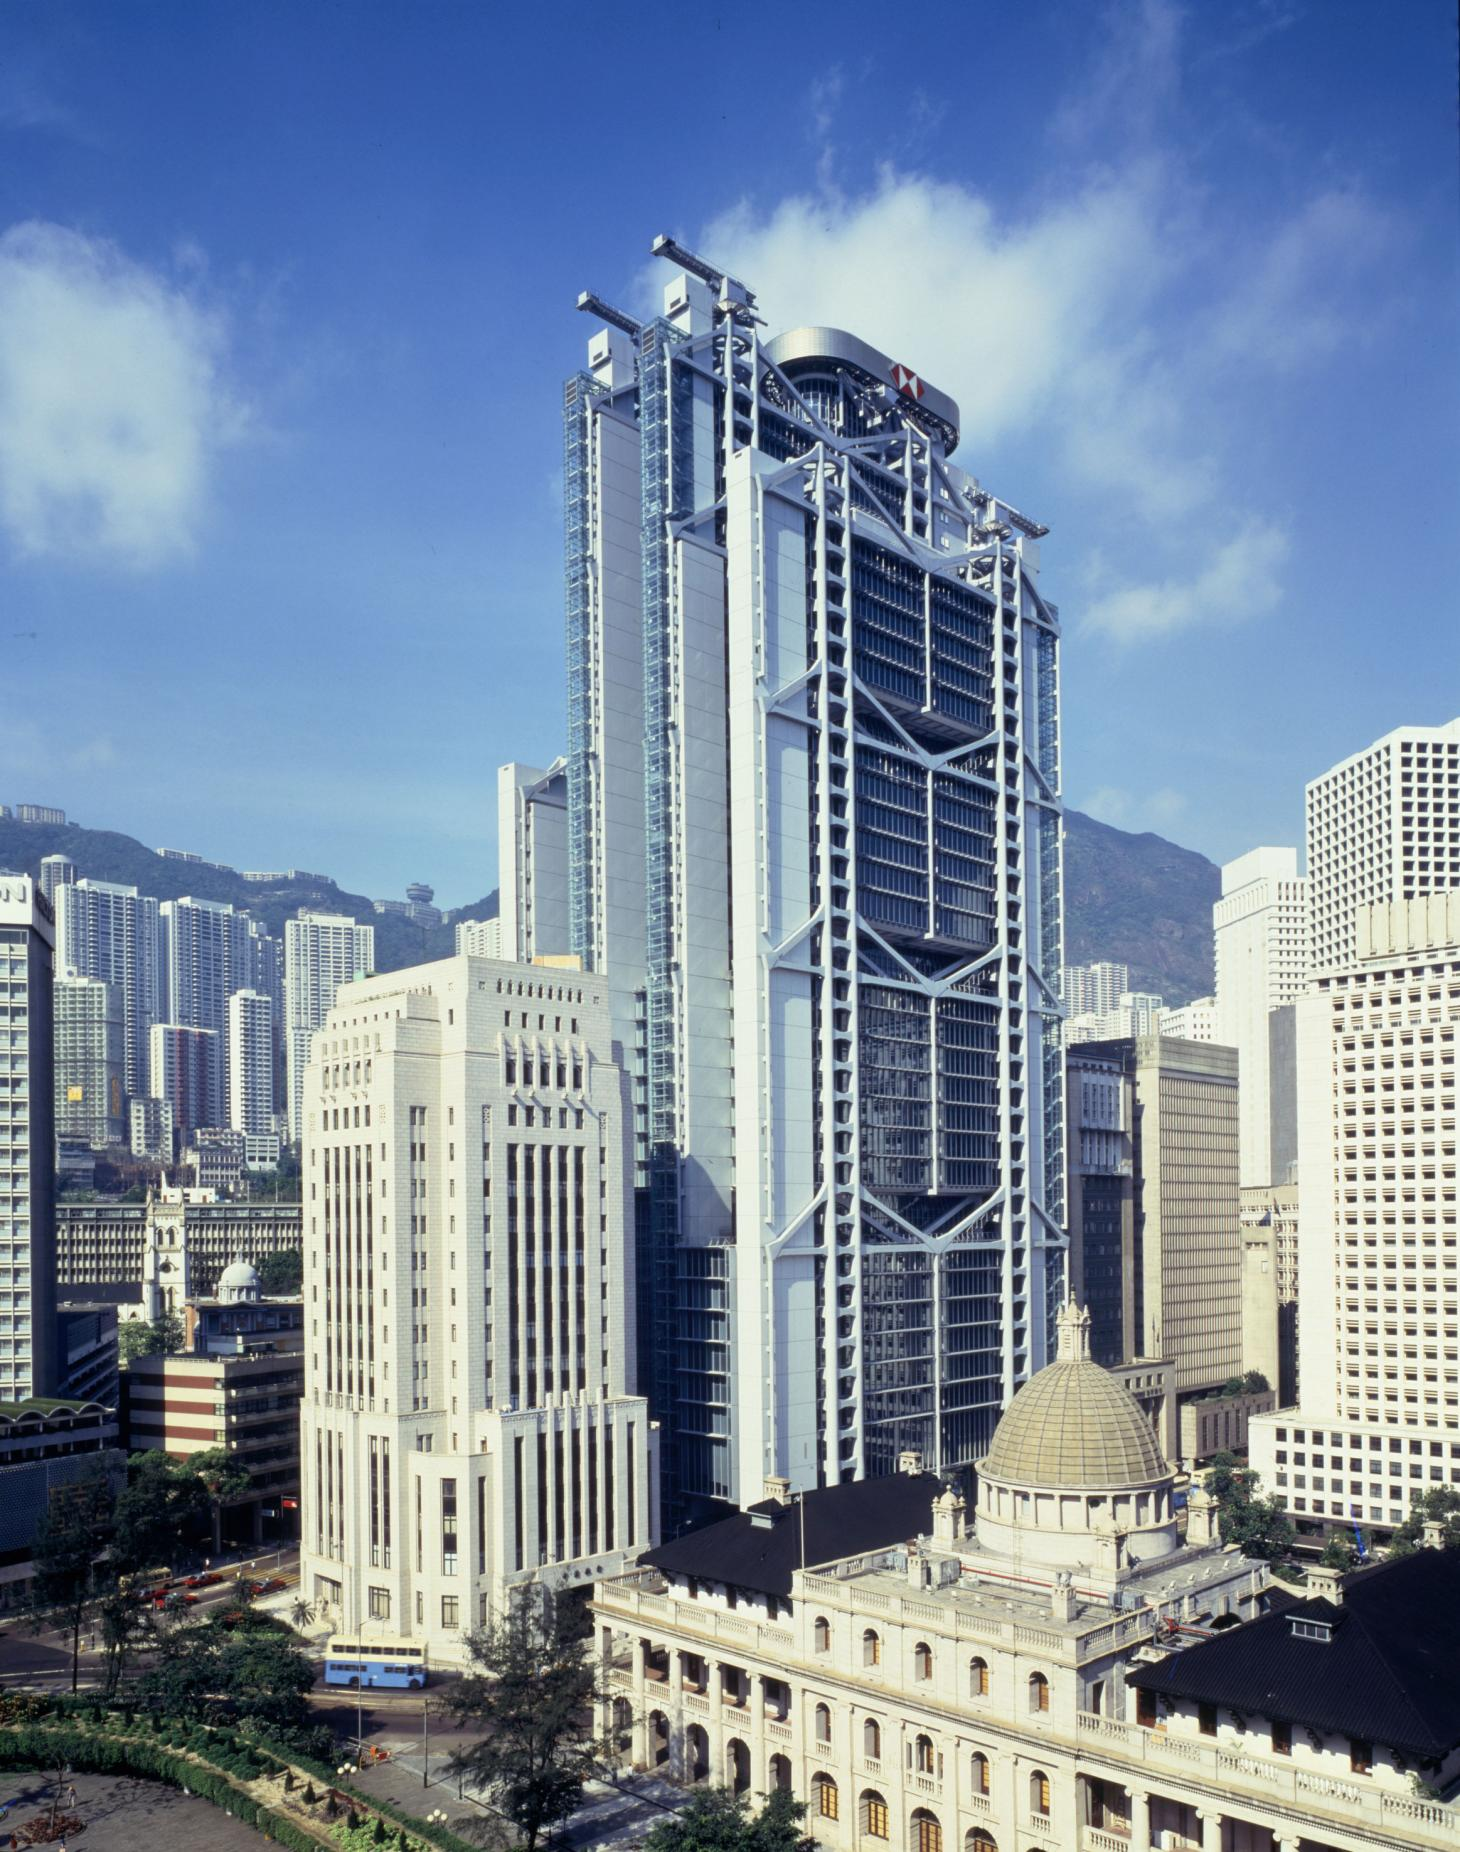 Hong Kong HSBC Tower